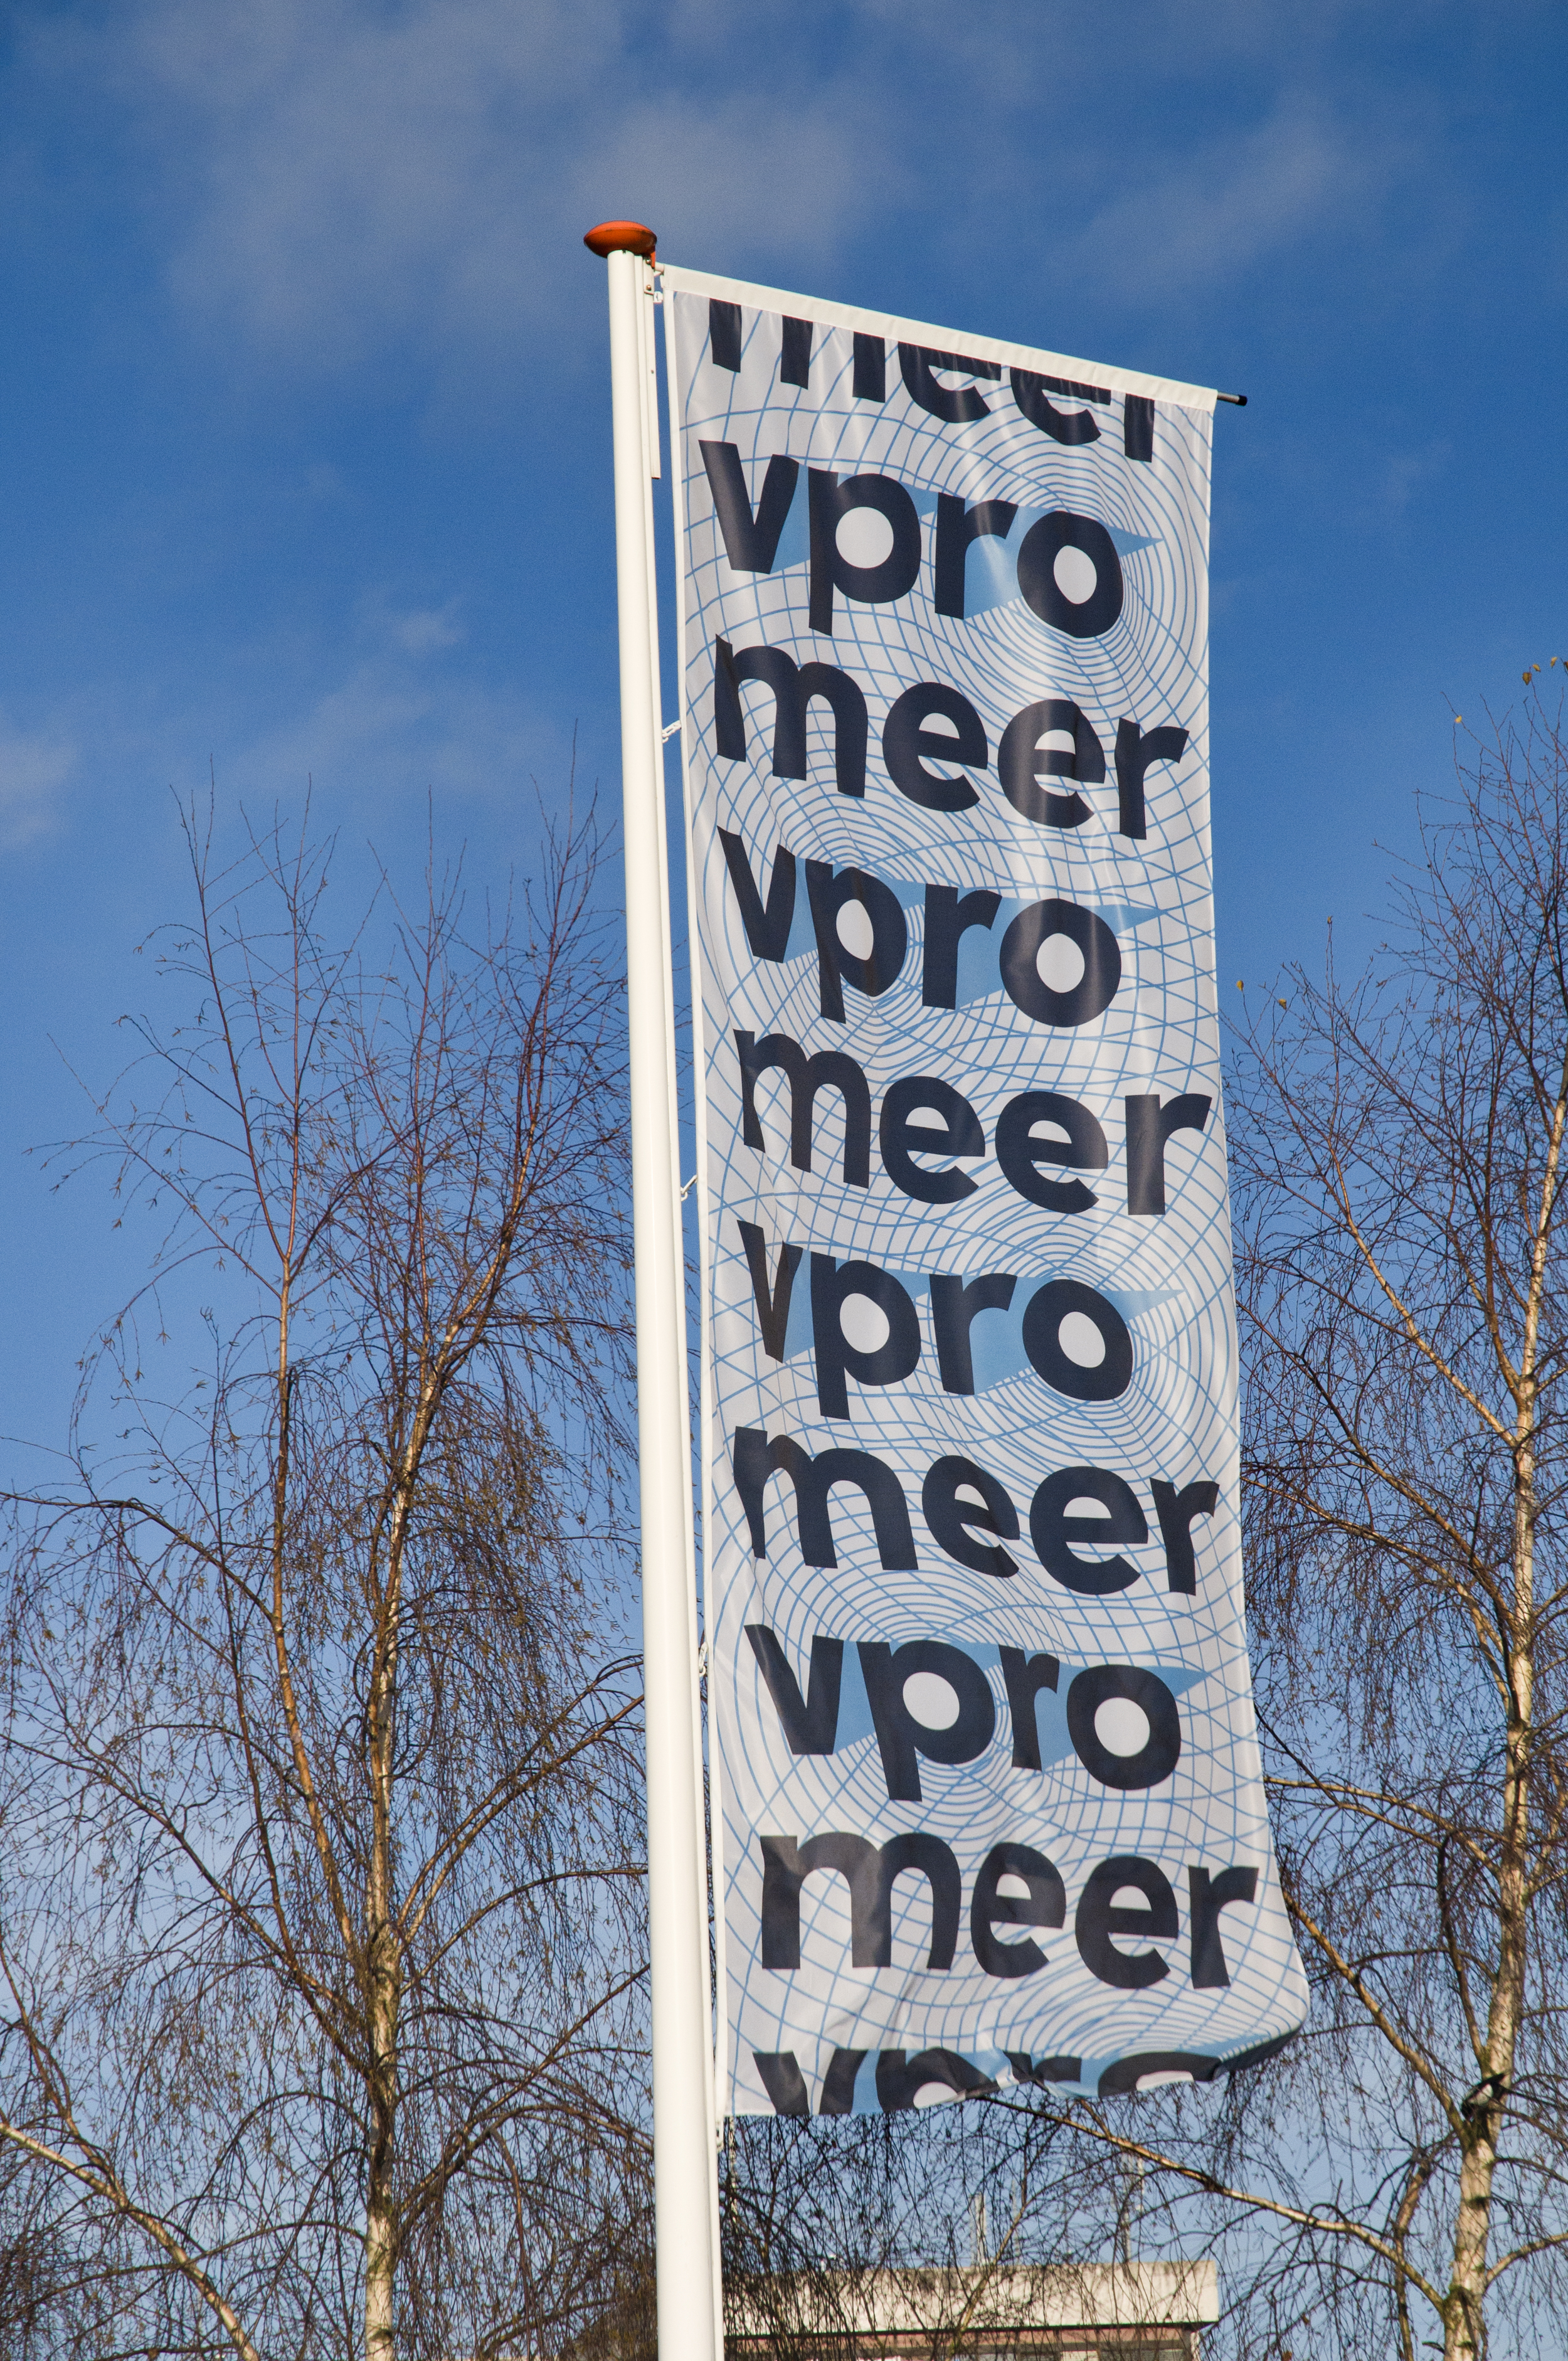 studio_colorado-vpro-vlag